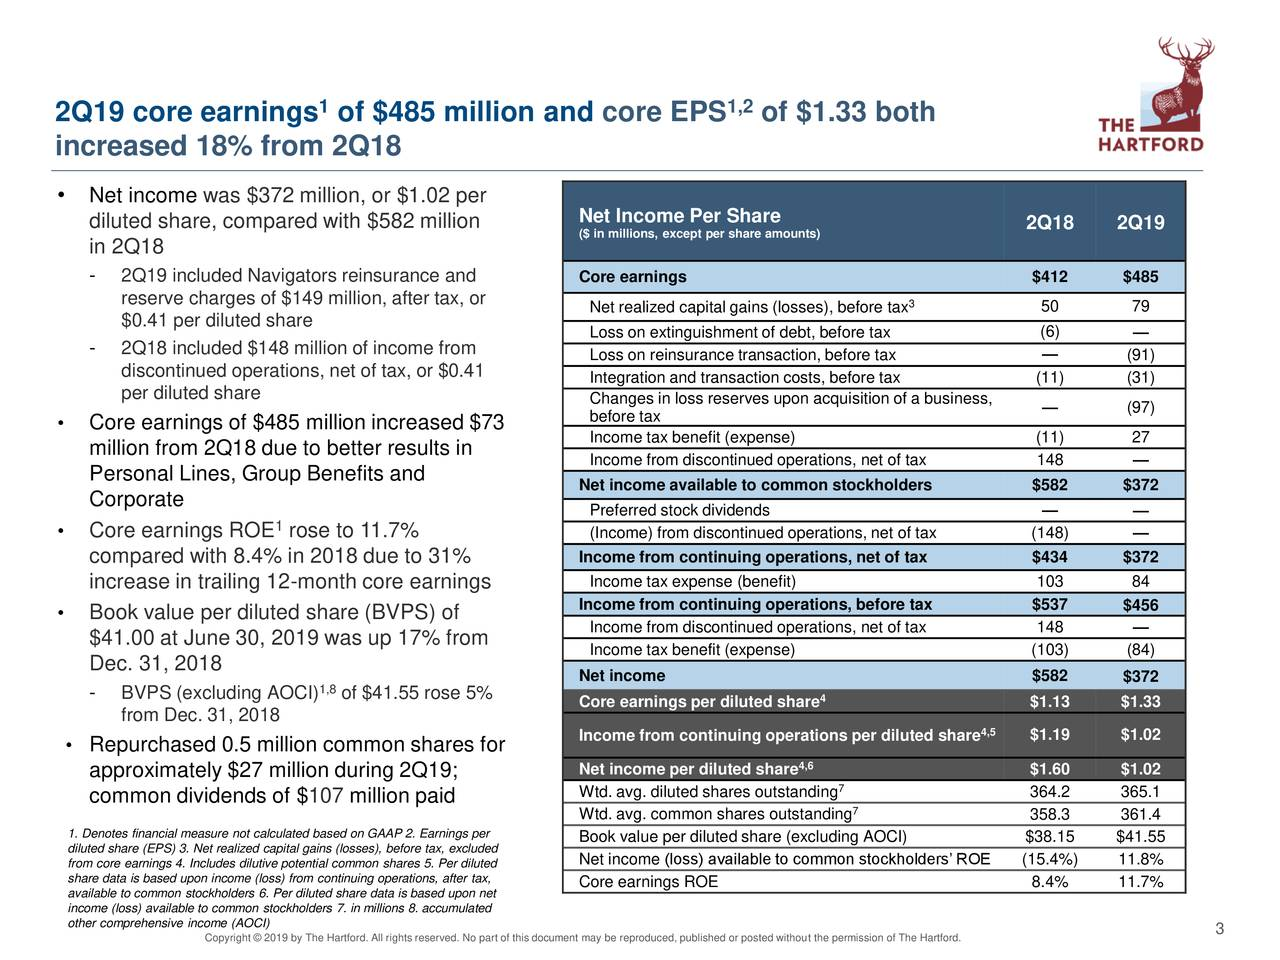 2Q19 core earnings of $485 million and core EPS                                  1,2 of $1.33 both